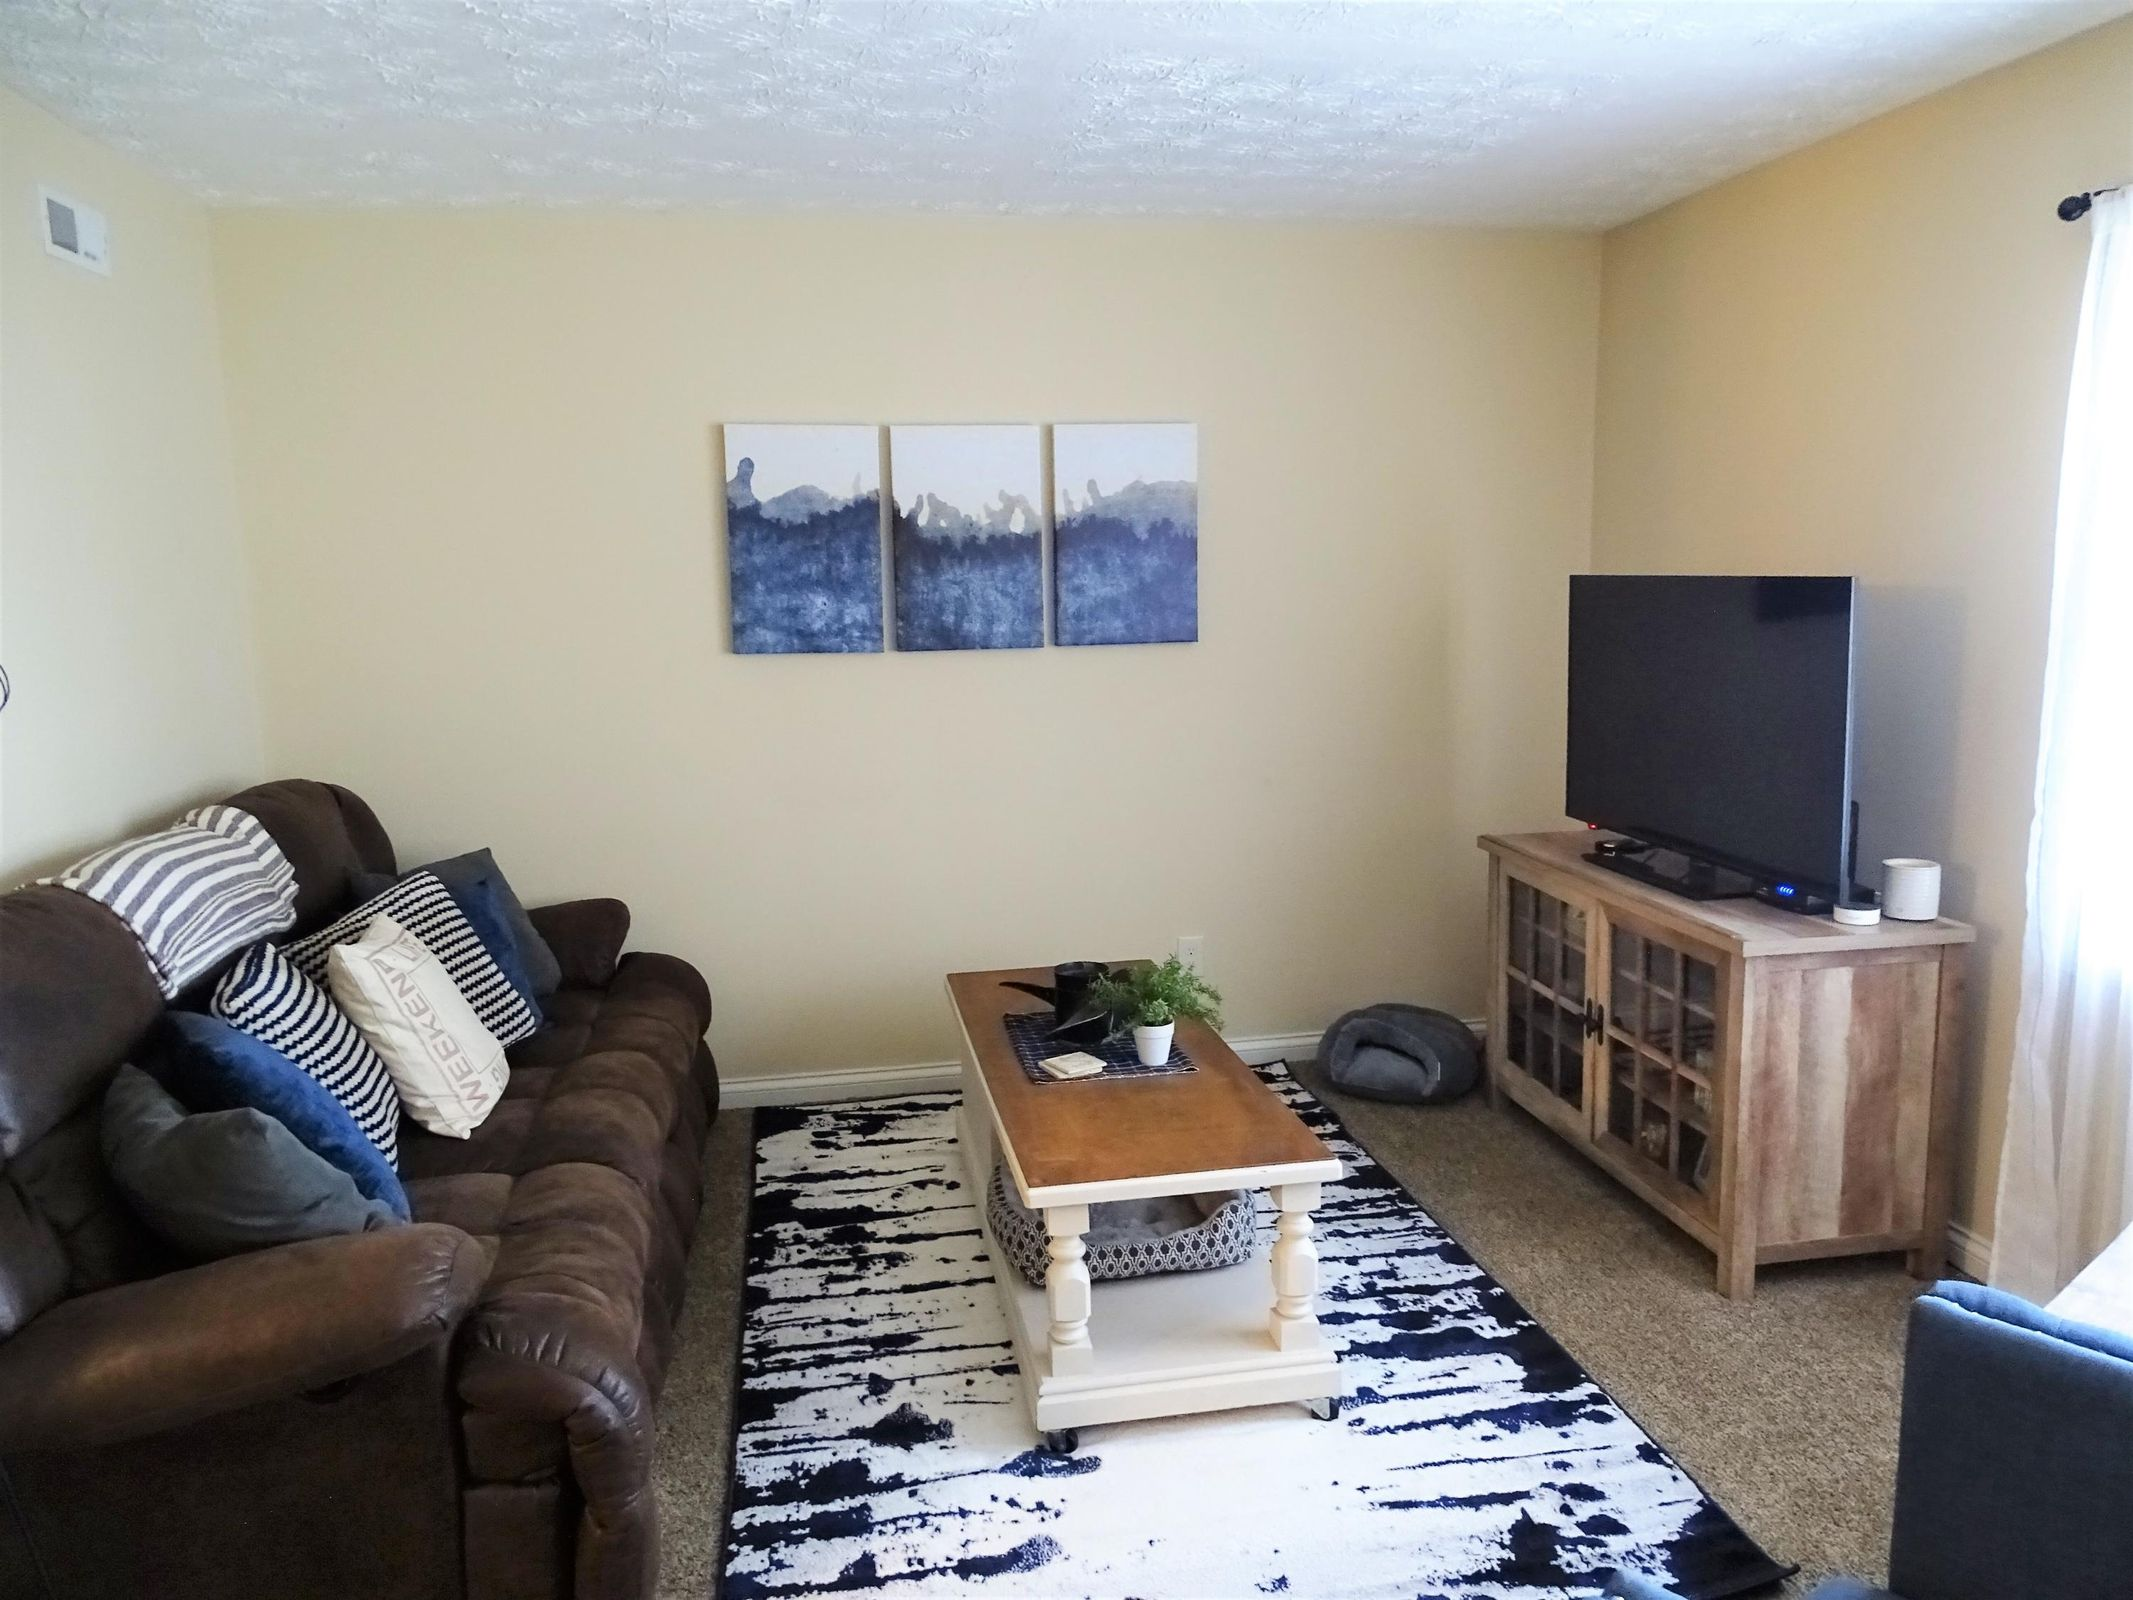 10 - Living Room - Updated a